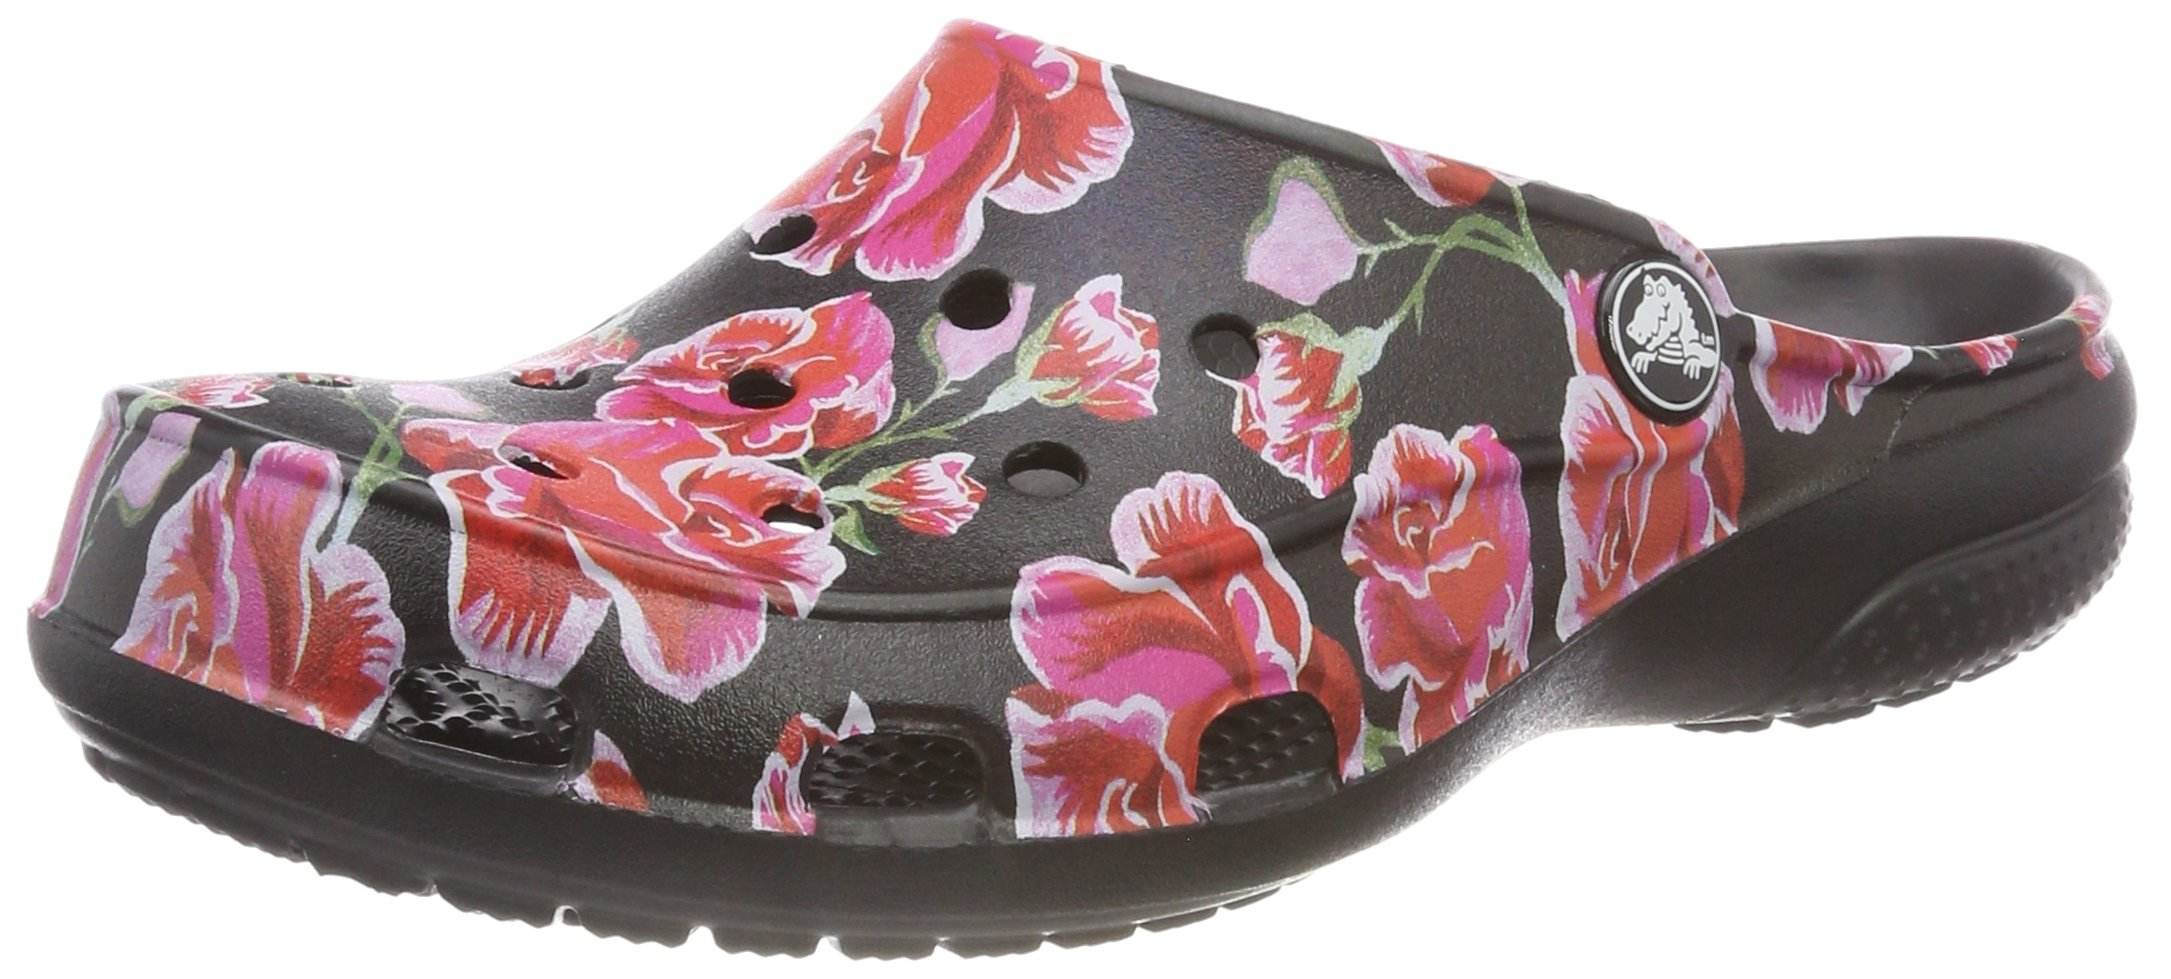 Crocs Women's Freesail Graphic W Clog, Multi Rose/Black, 8 M US